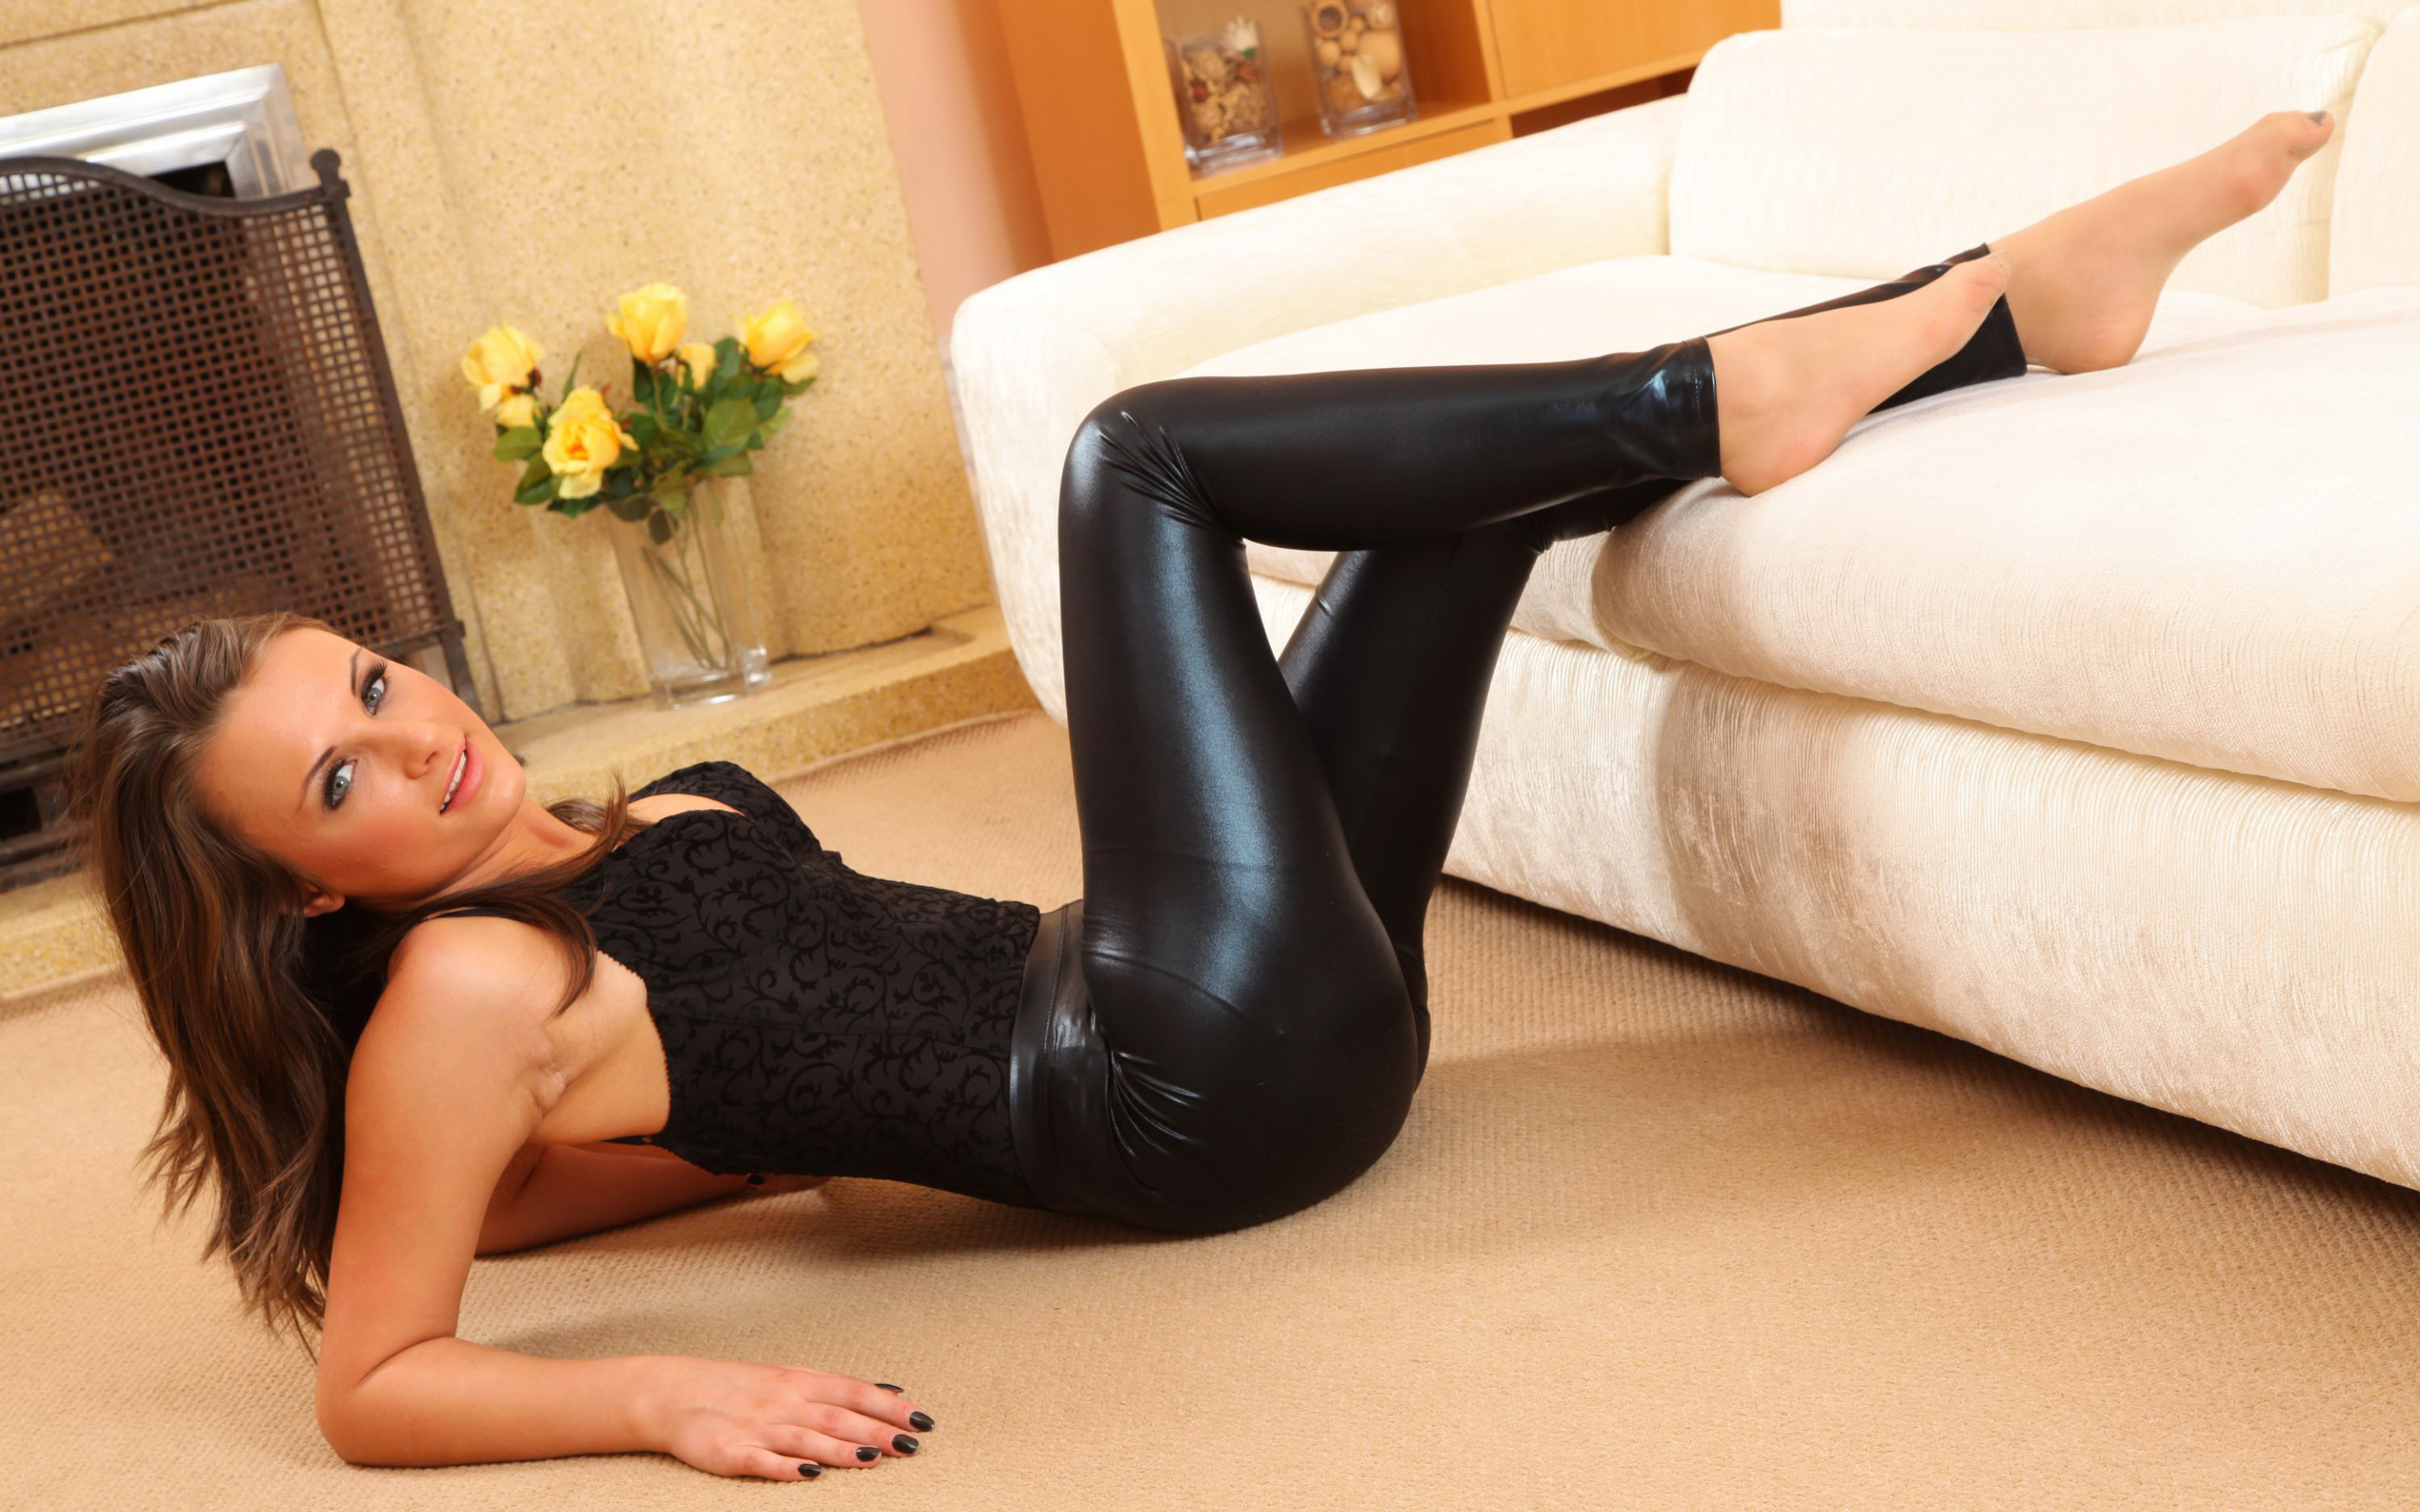 Awesome brunette bitch Deliliah is spreading her shaved tight hole № 582059 без смс